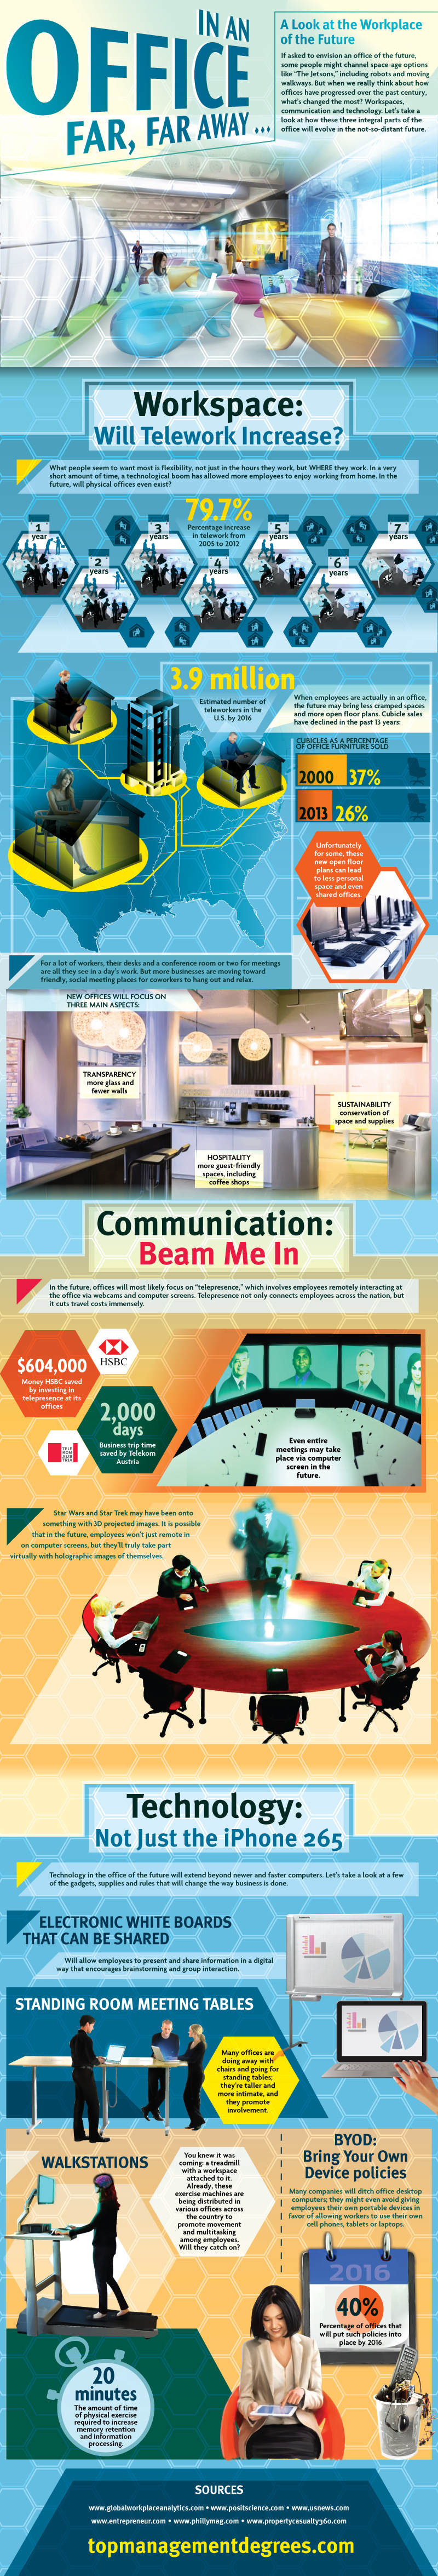 Virtual Offices are the Workplace of the Future full